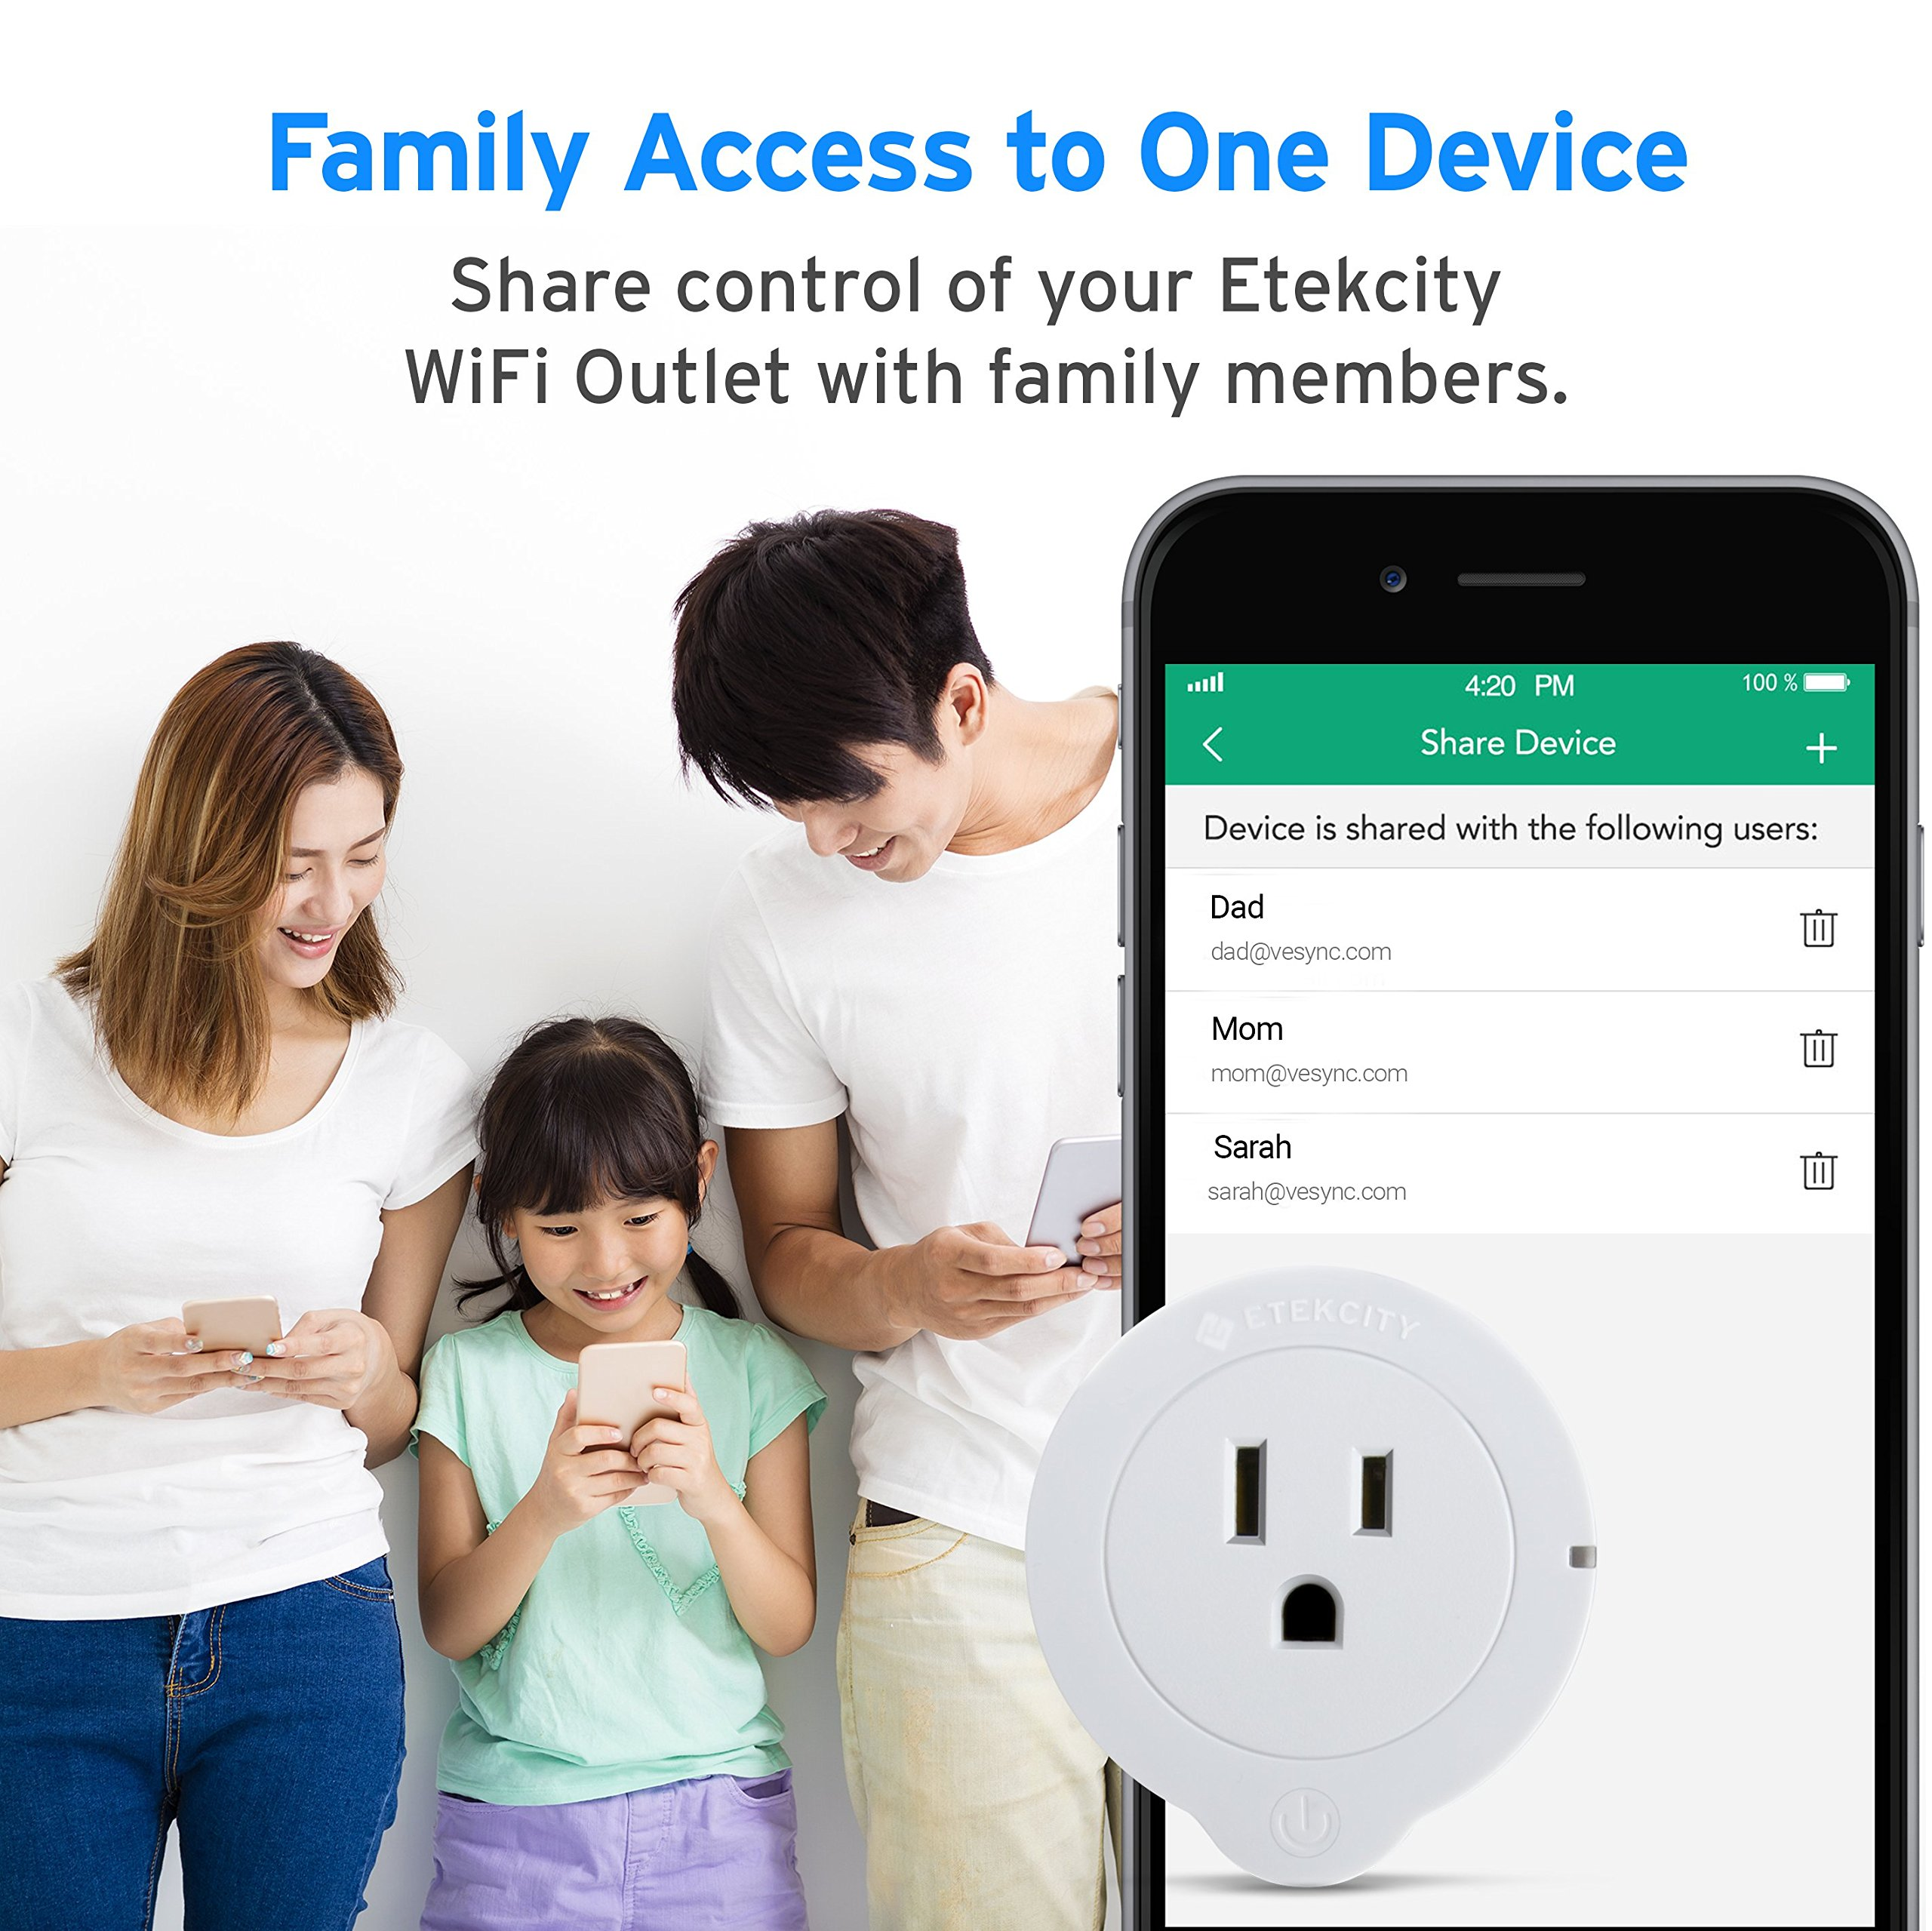 Etekcity WiFi Smart Plug, Voltson Mini Outlet with Energy Monitoring (6-Pack), No Hub Required, ETL Listed, White, Works with Alexa, Google Home and IFTTT by Etekcity (Image #4)